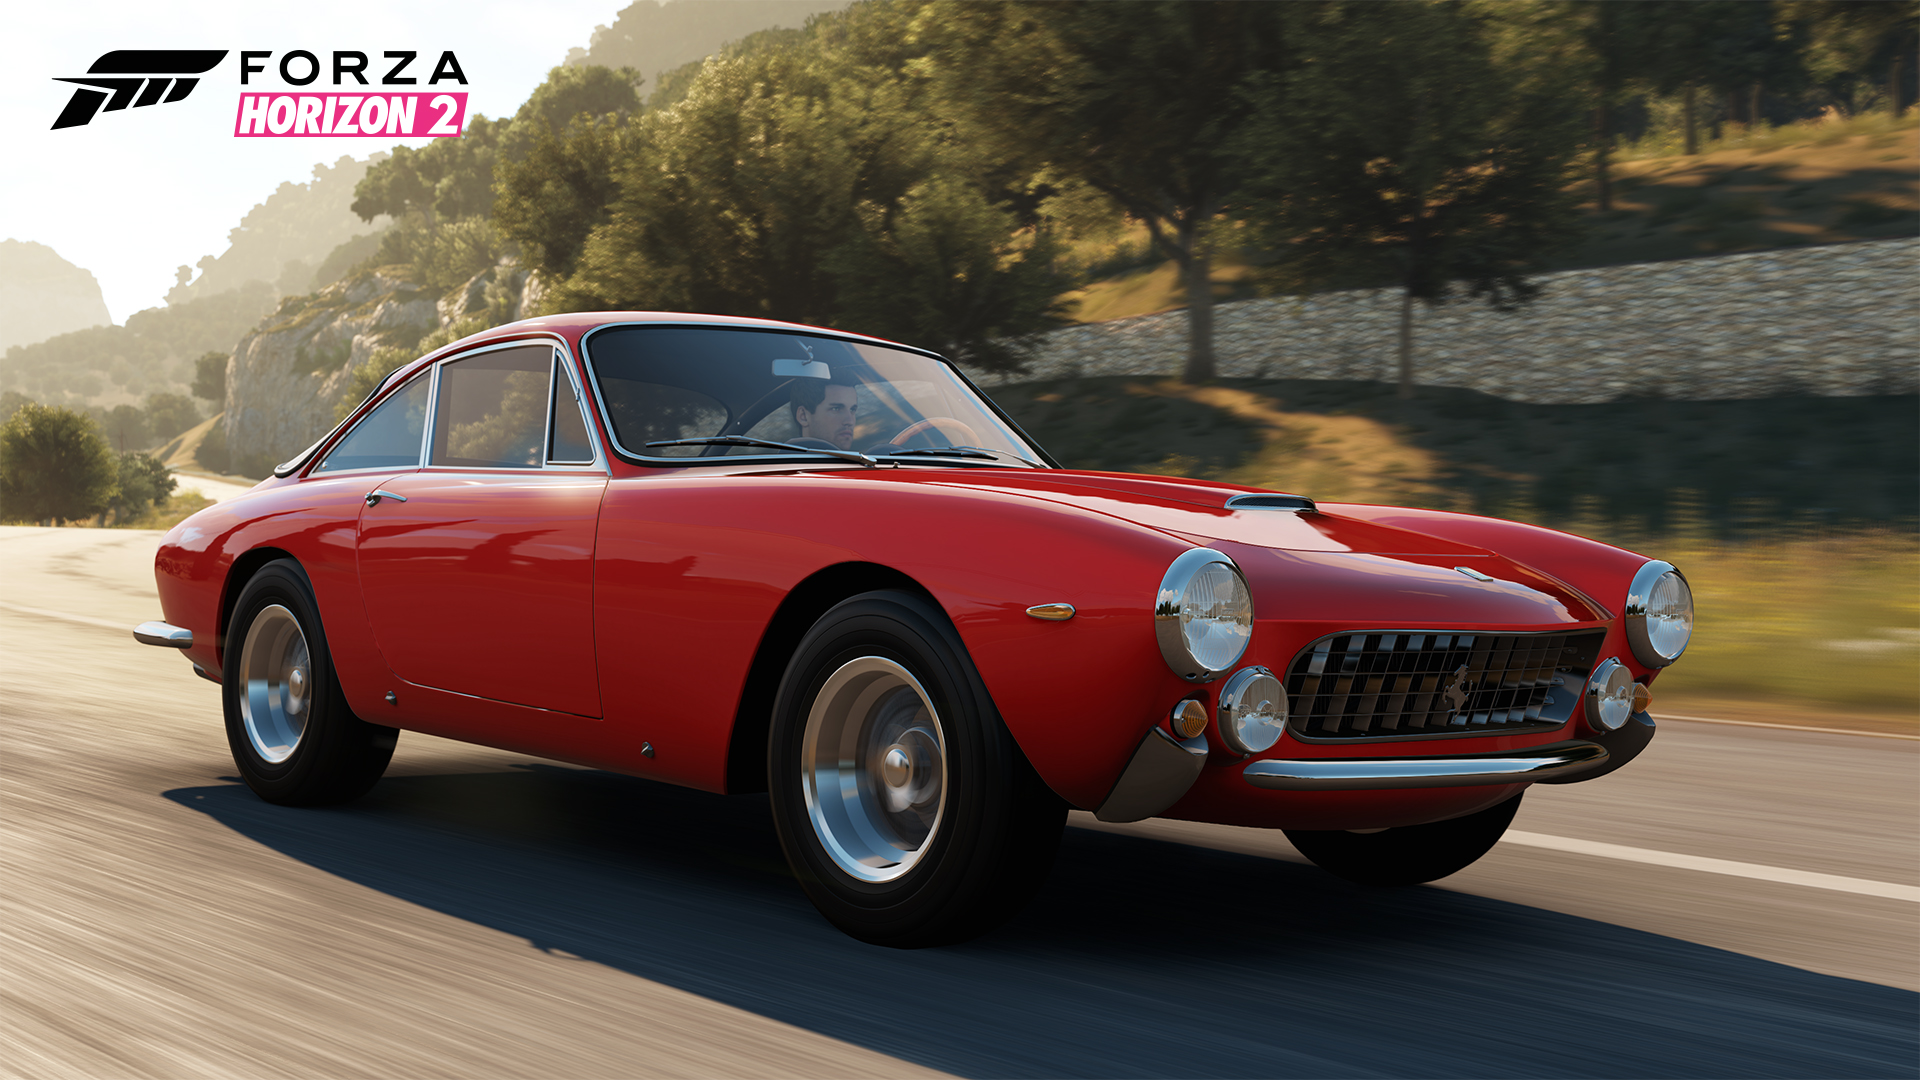 ferrari gt berlinetta 1962 lusso forza horizon 2 xbox one upgrade